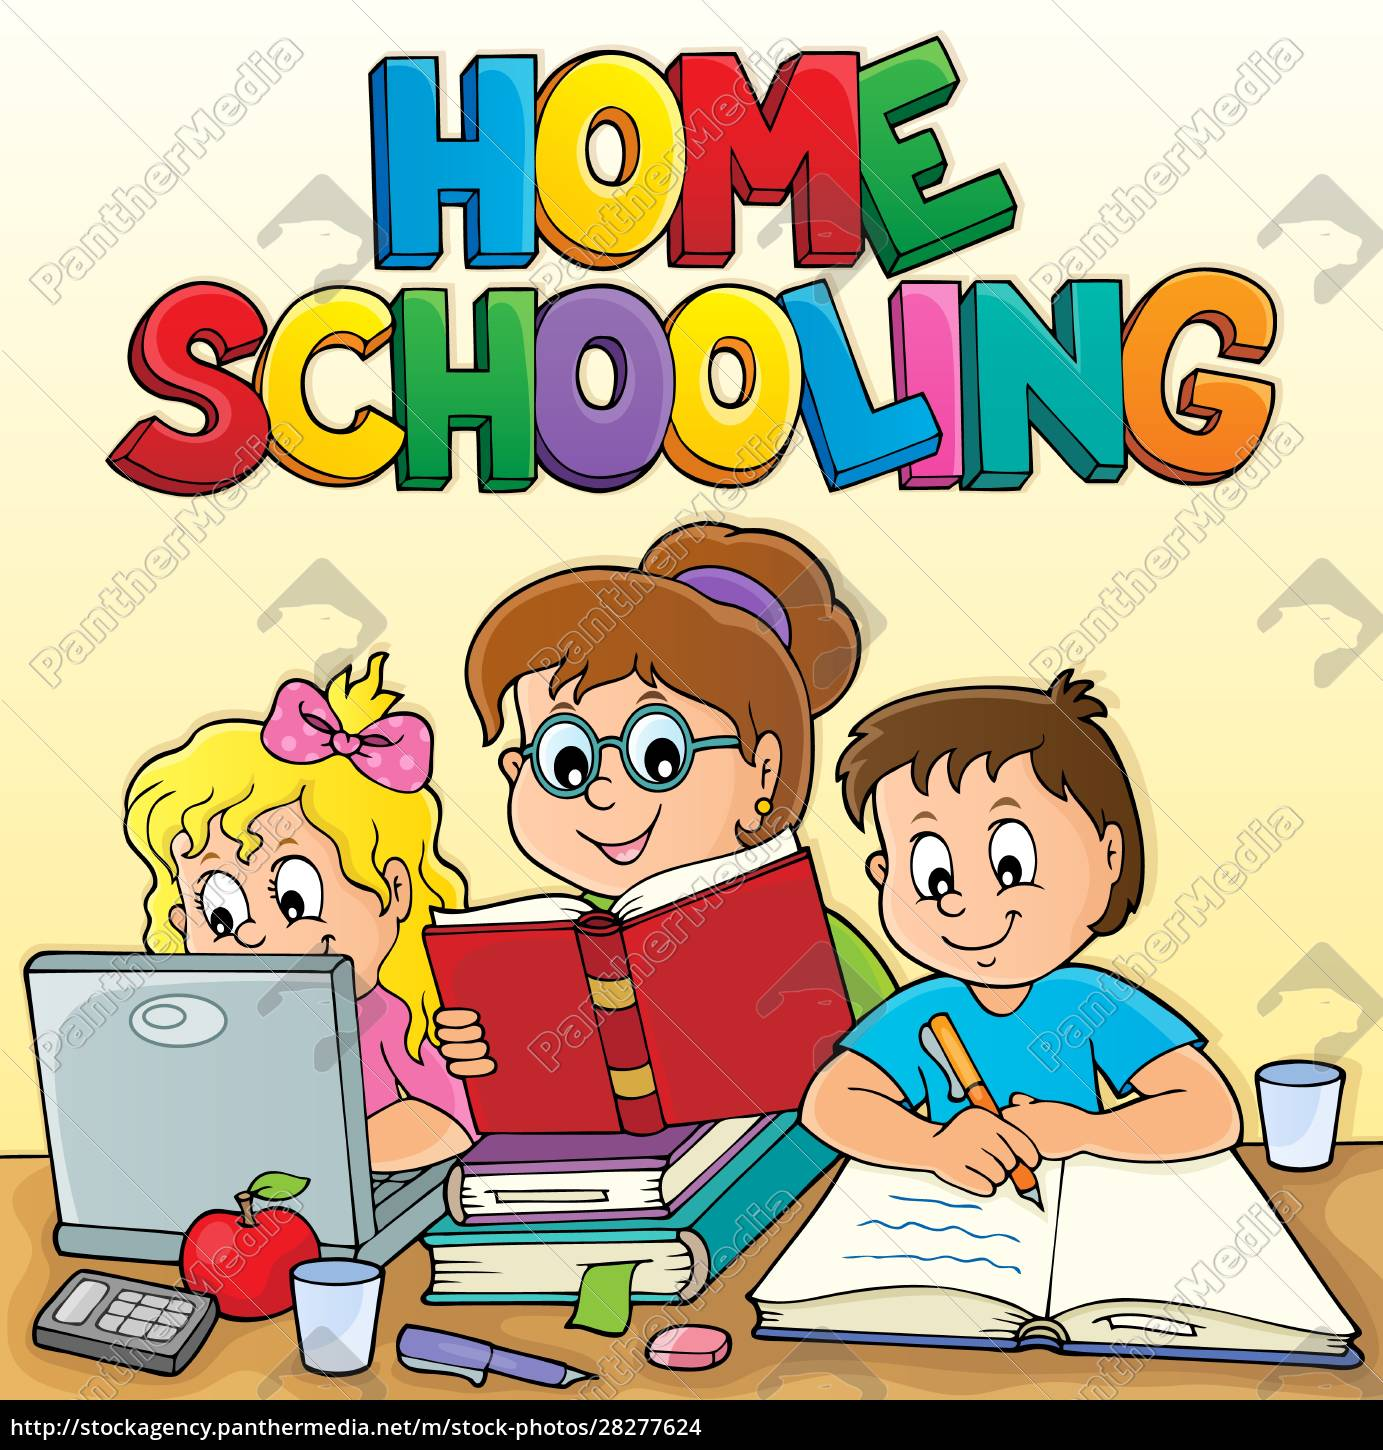 home, schooling, theme, image, 2 - 28277624